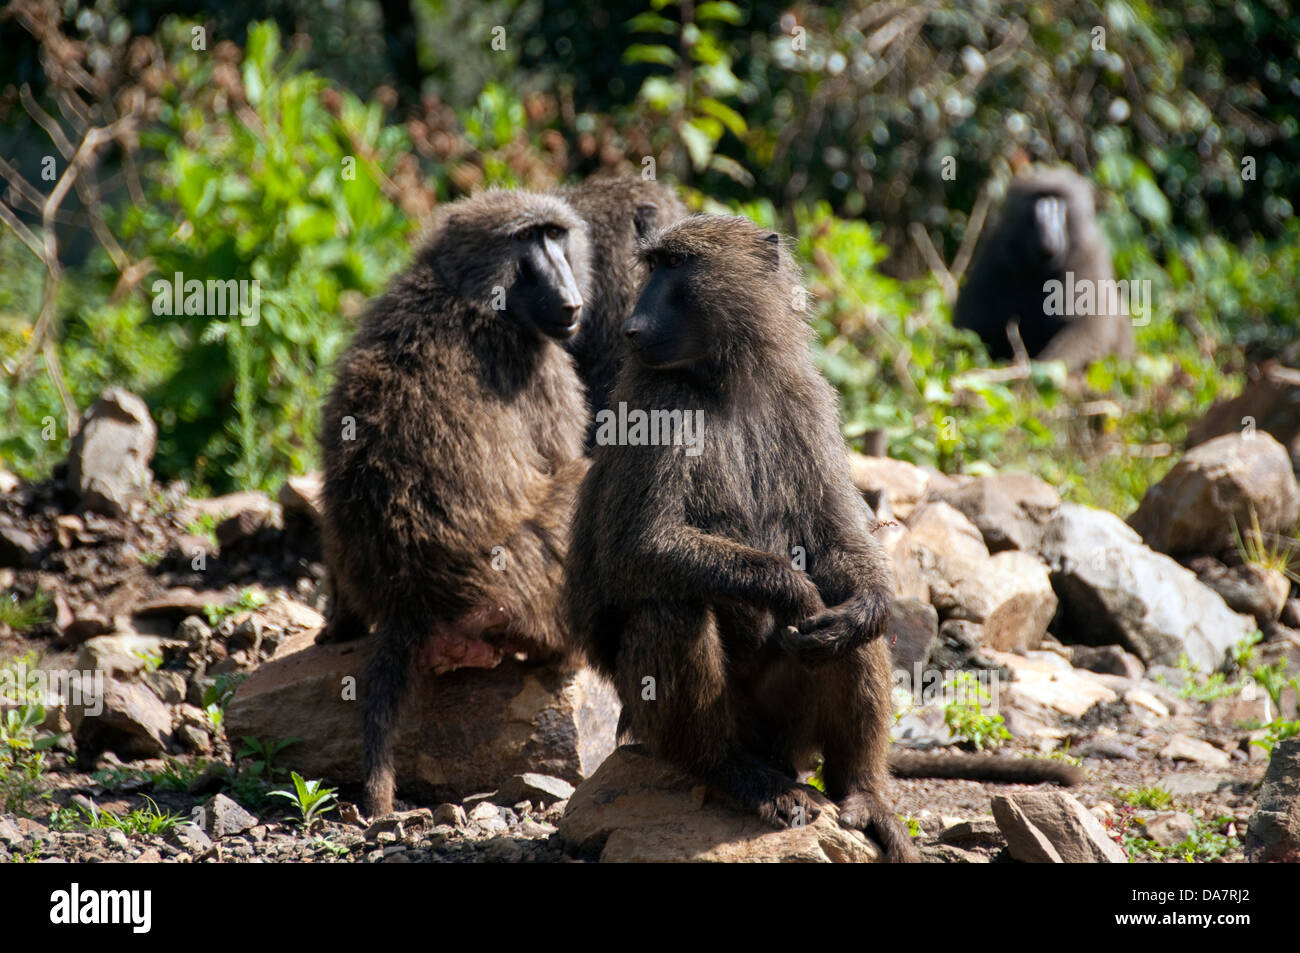 Baboons on the side of the road, Ethiopia - Stock Image